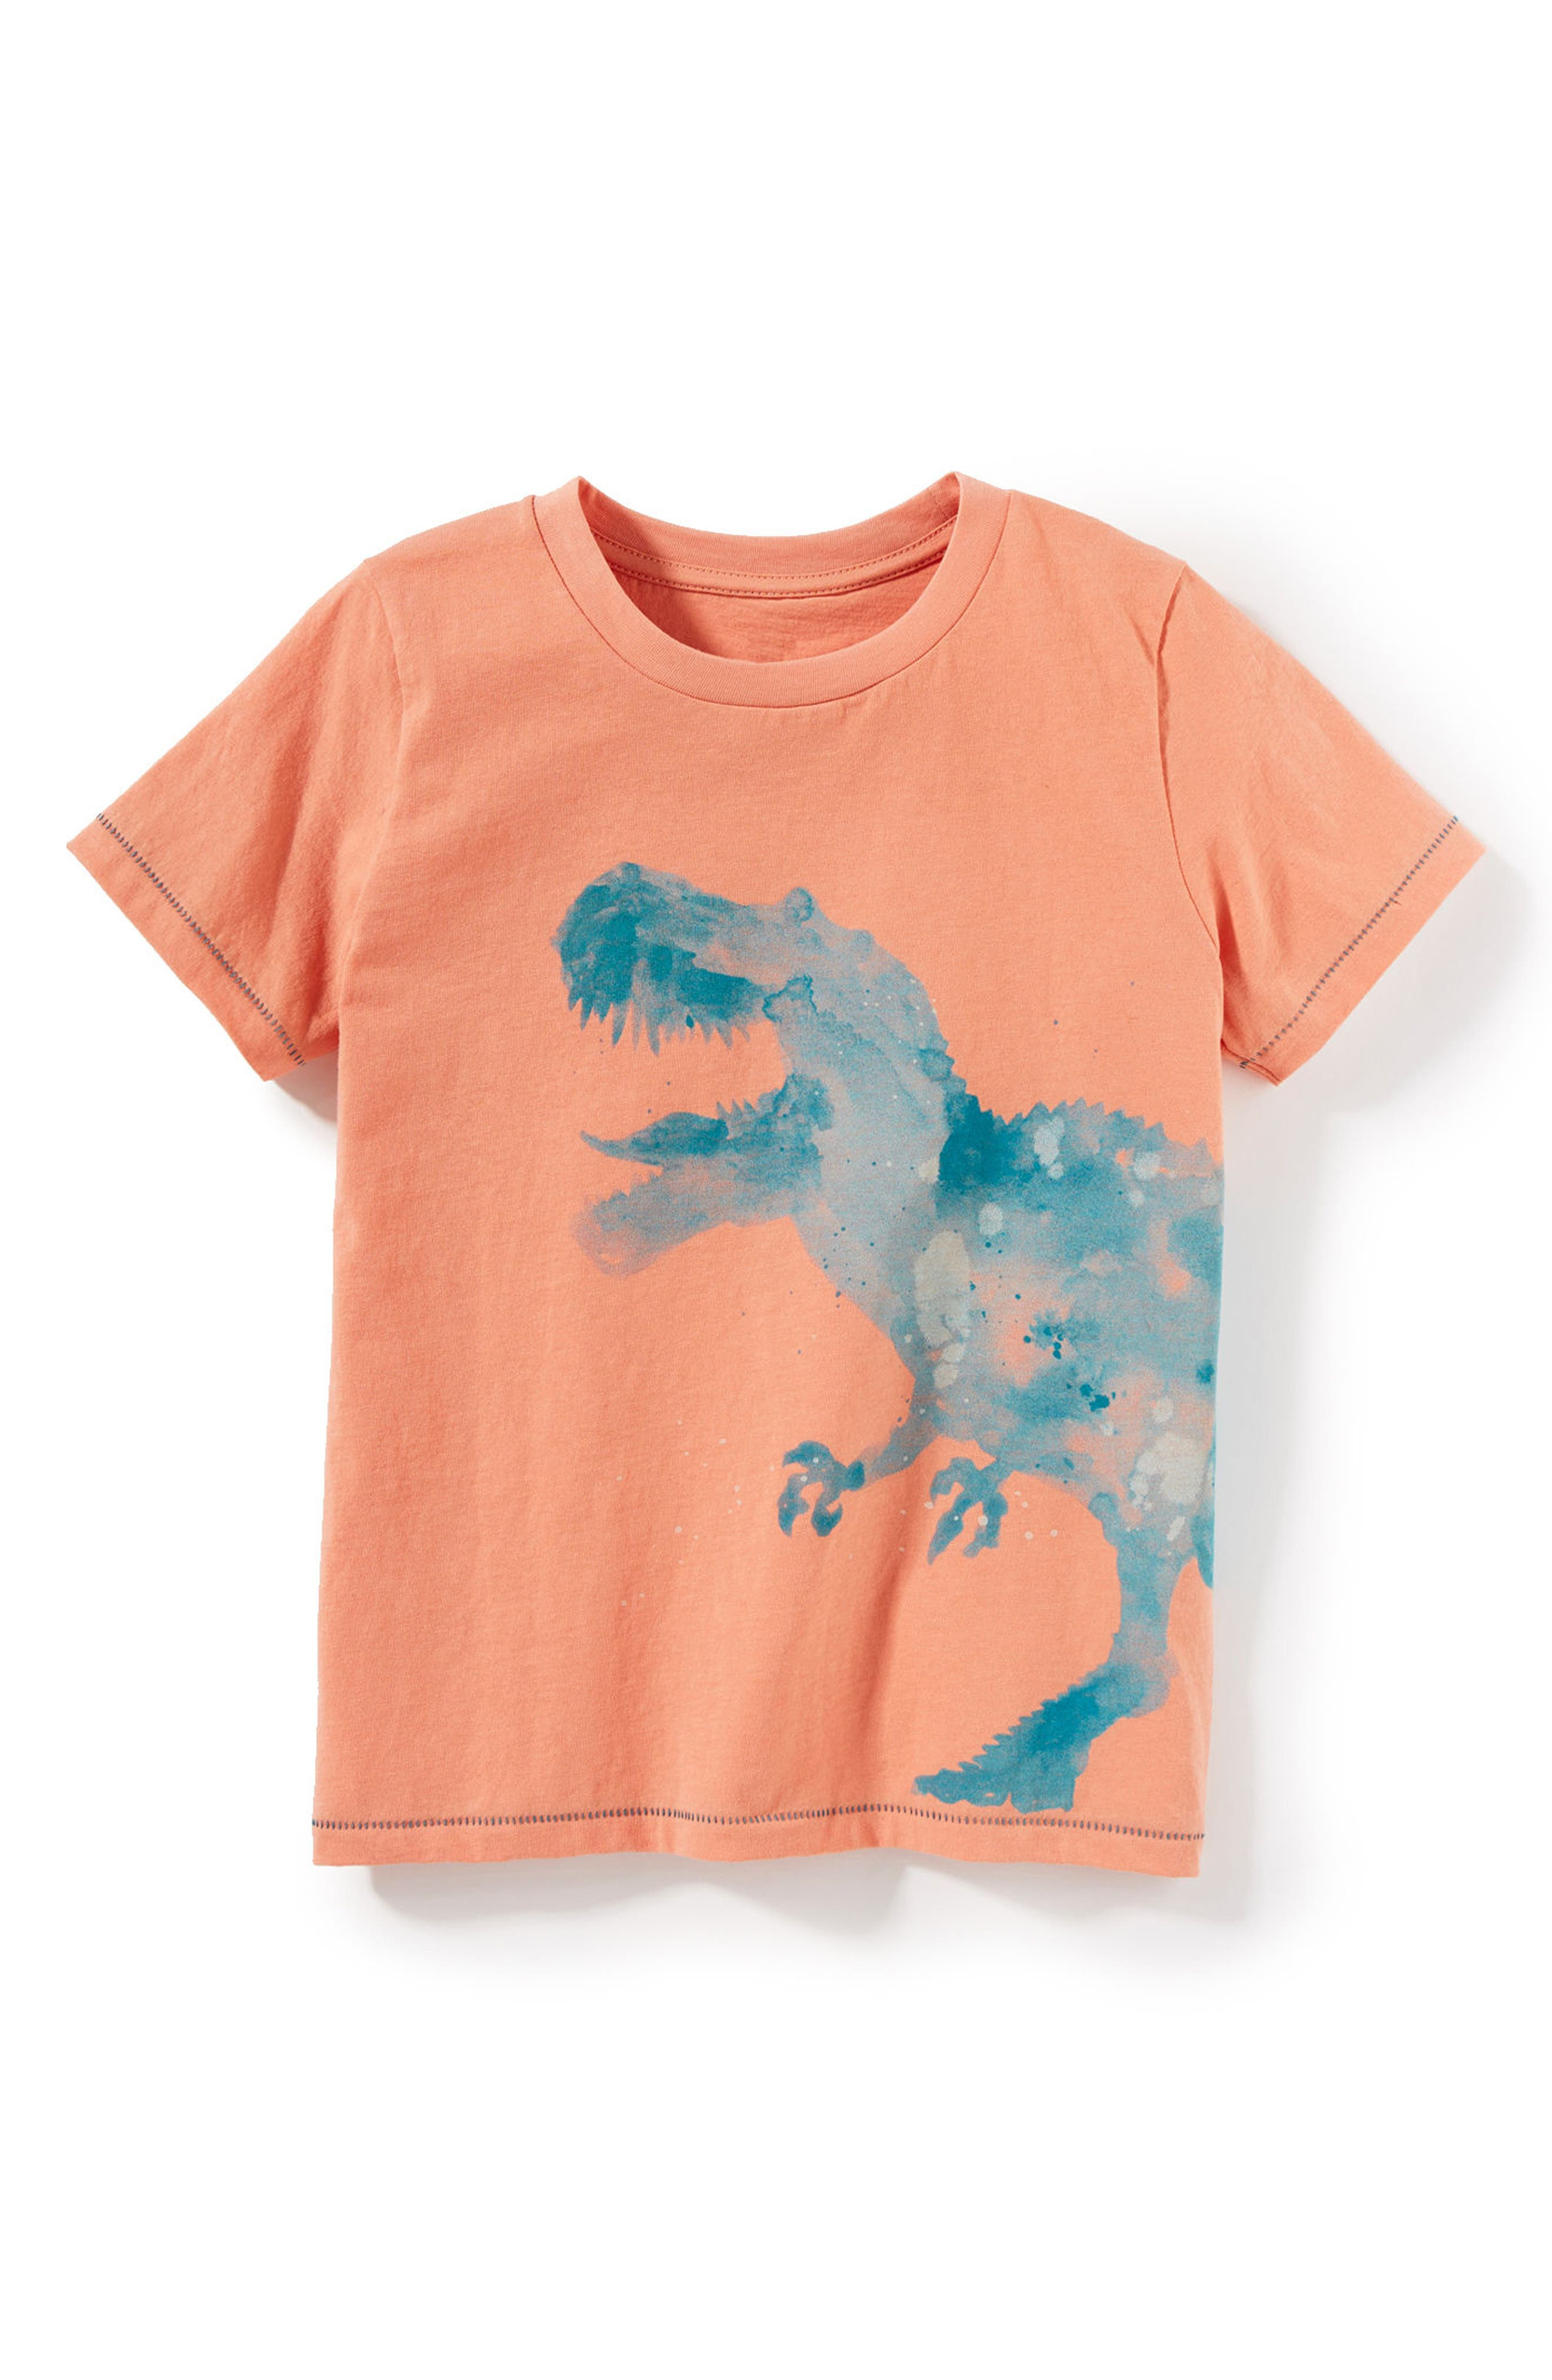 Dinosaur Graphic T-Shirt,                             Main thumbnail 1, color,                             950